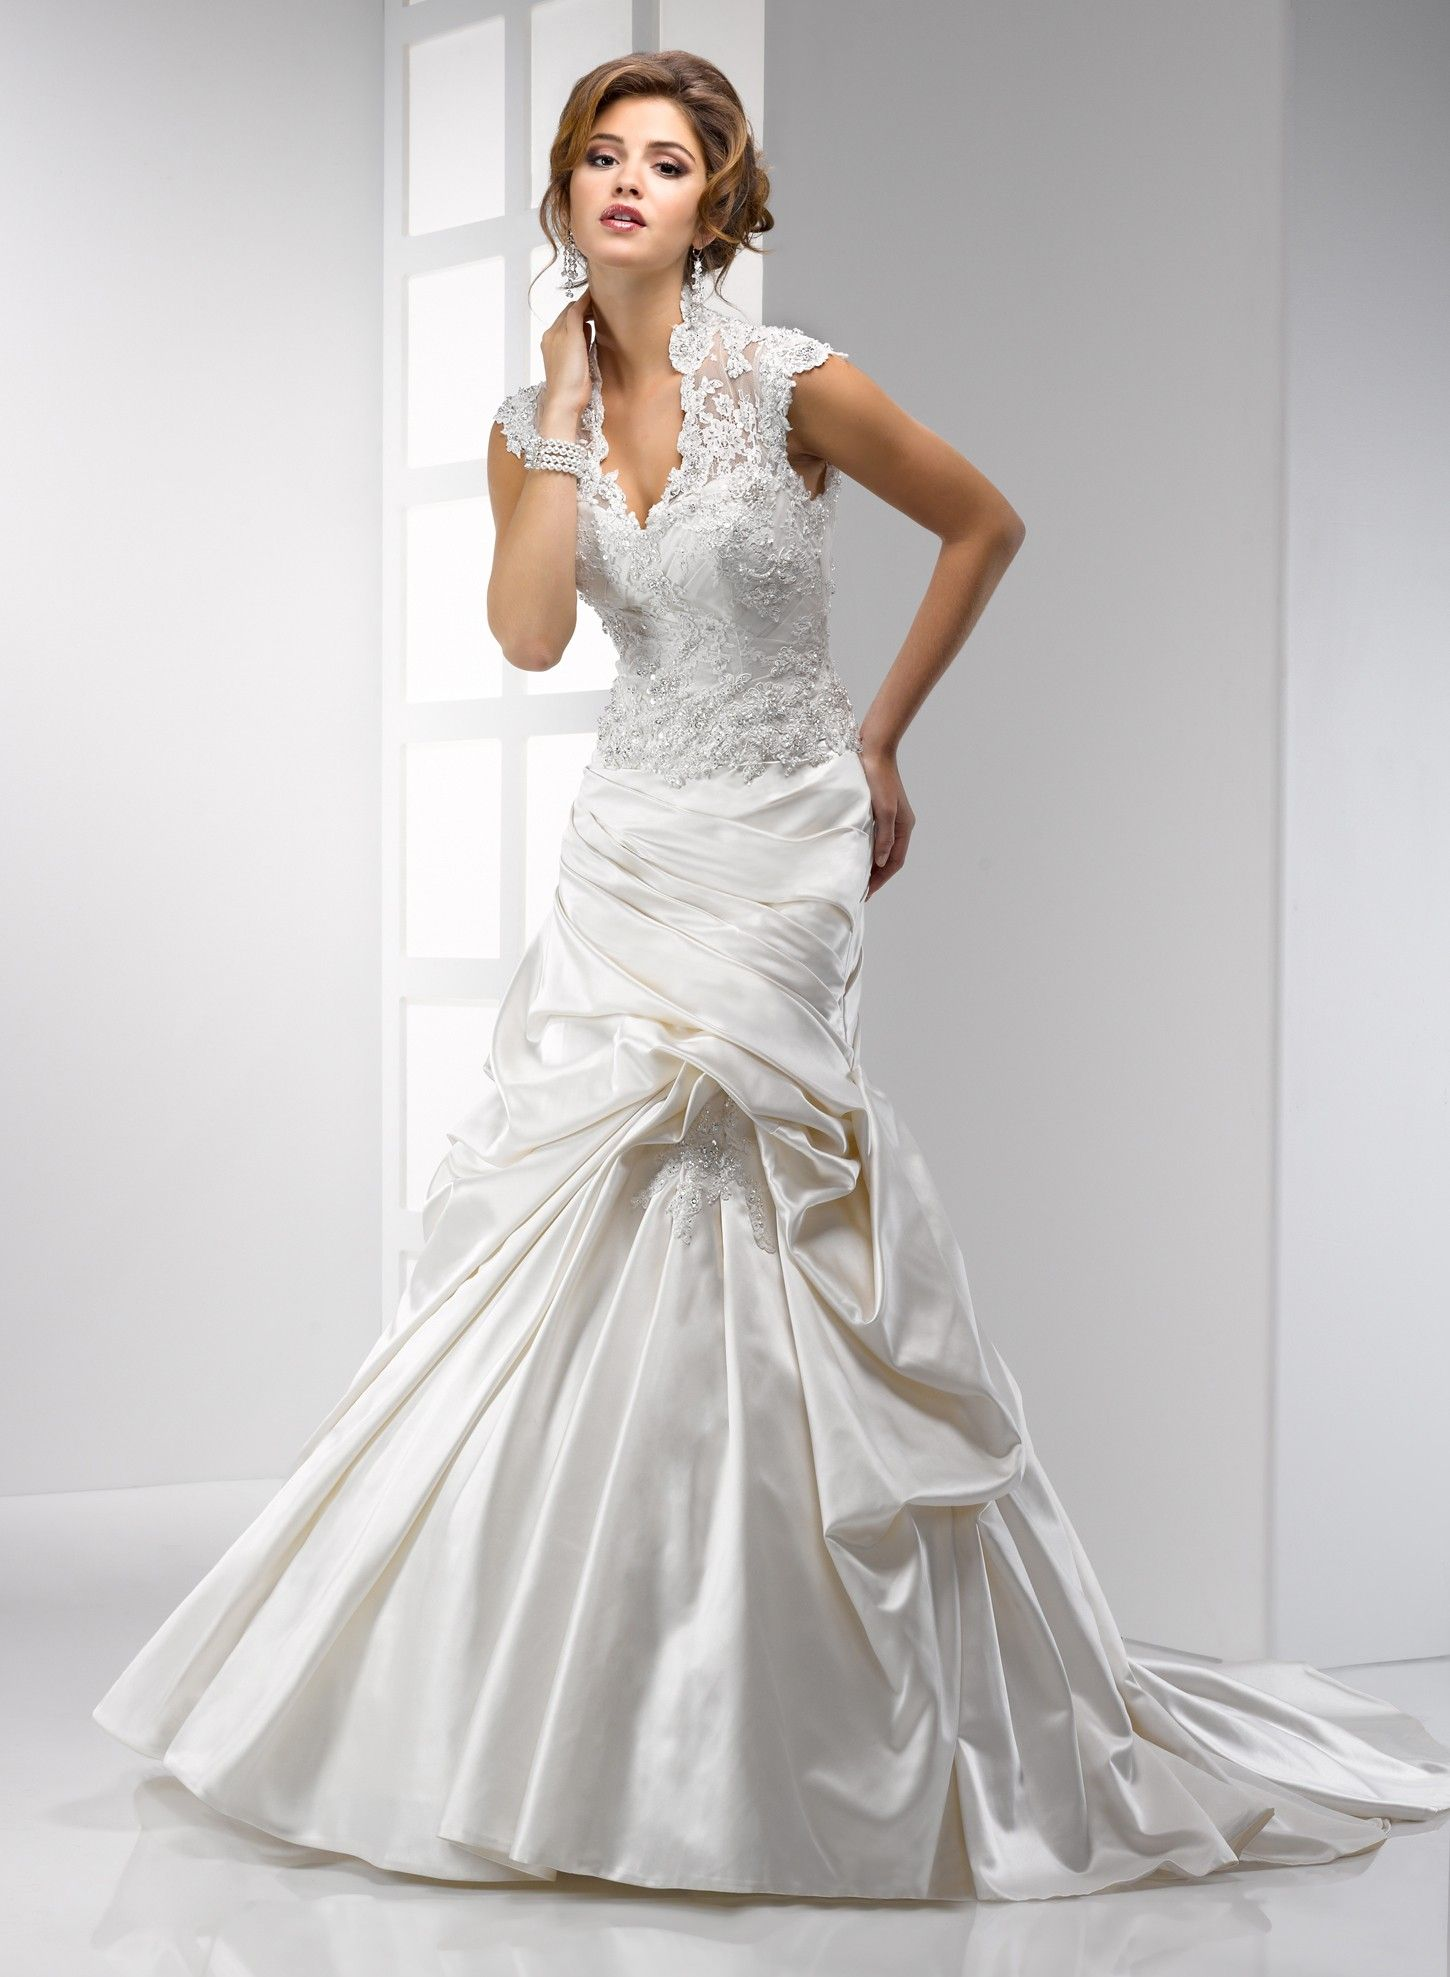 Wedding dress with collar  high collar halter wedding dress  Google Search  My Style